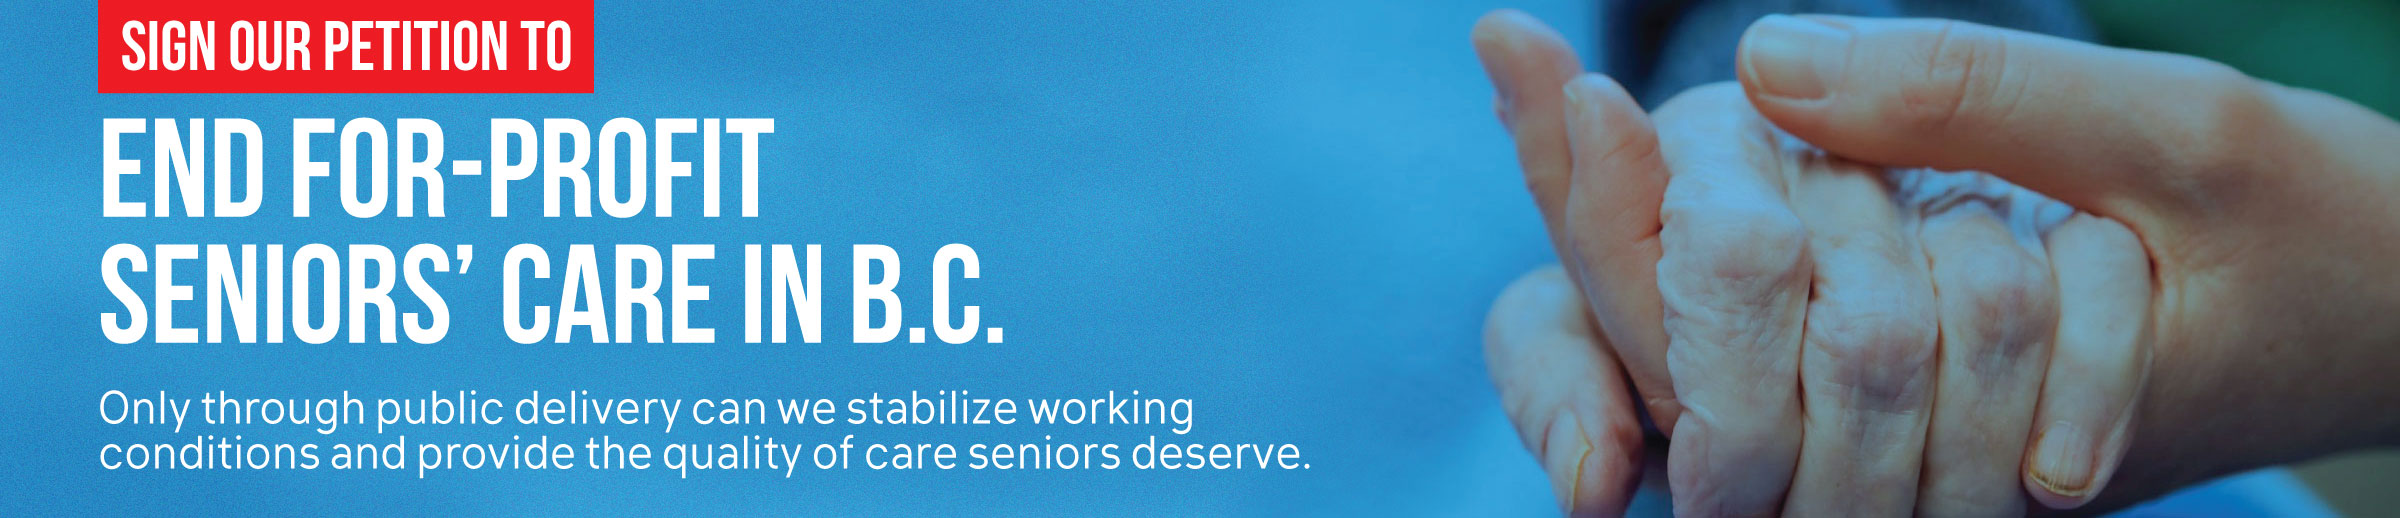 End for-profit seniors' care in B.C.